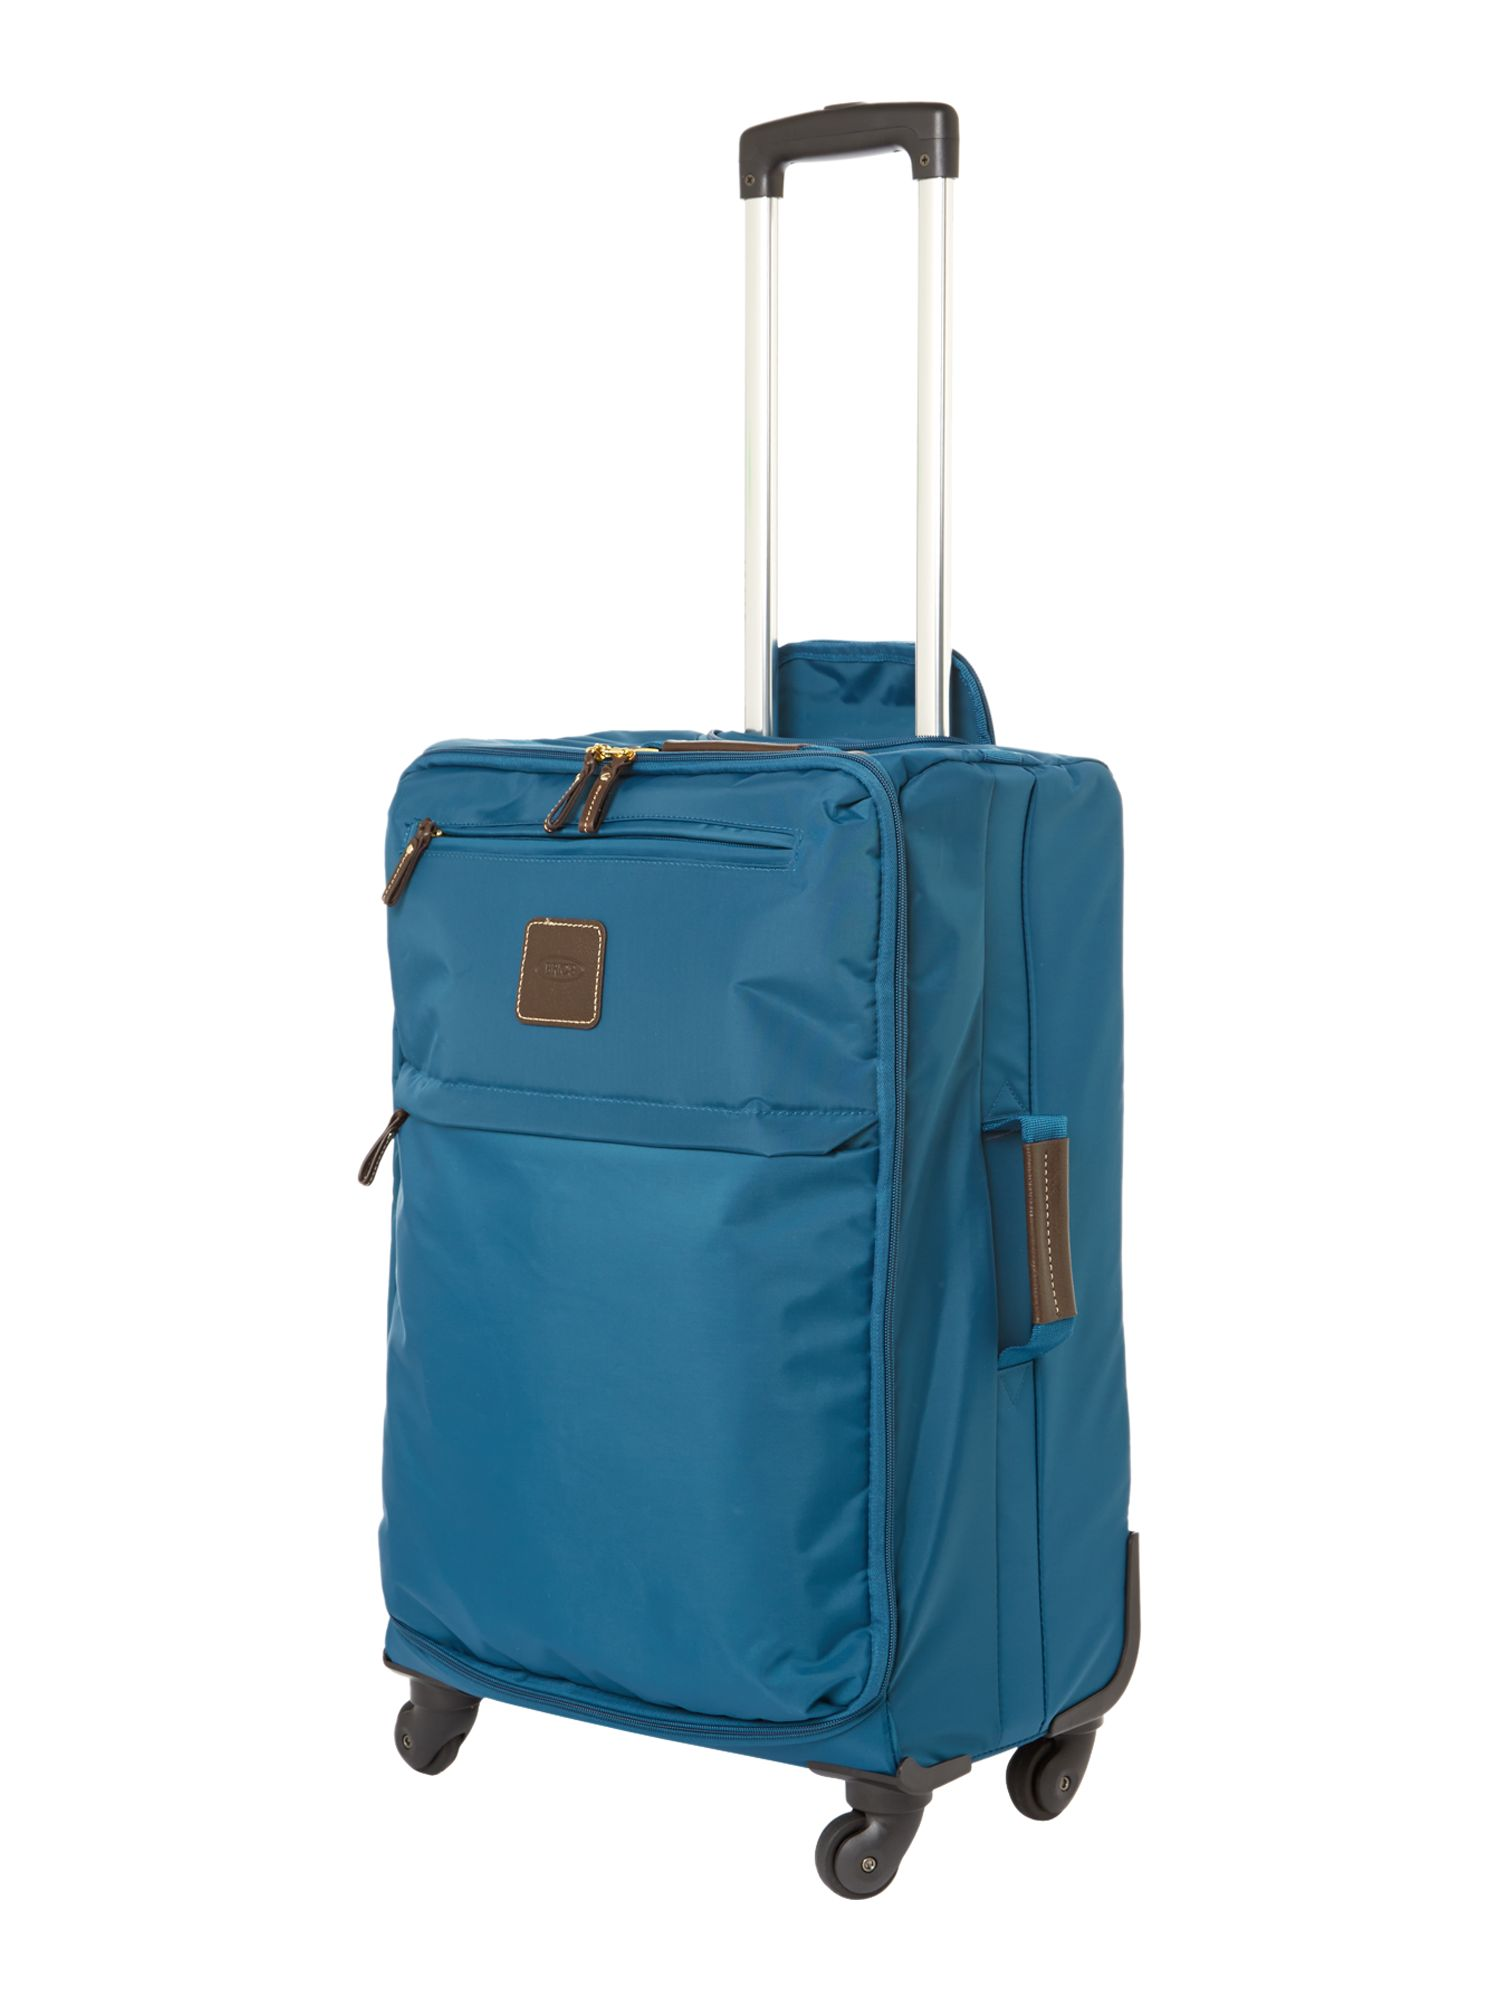 X Travel Bluette 65cm 4 wheel case